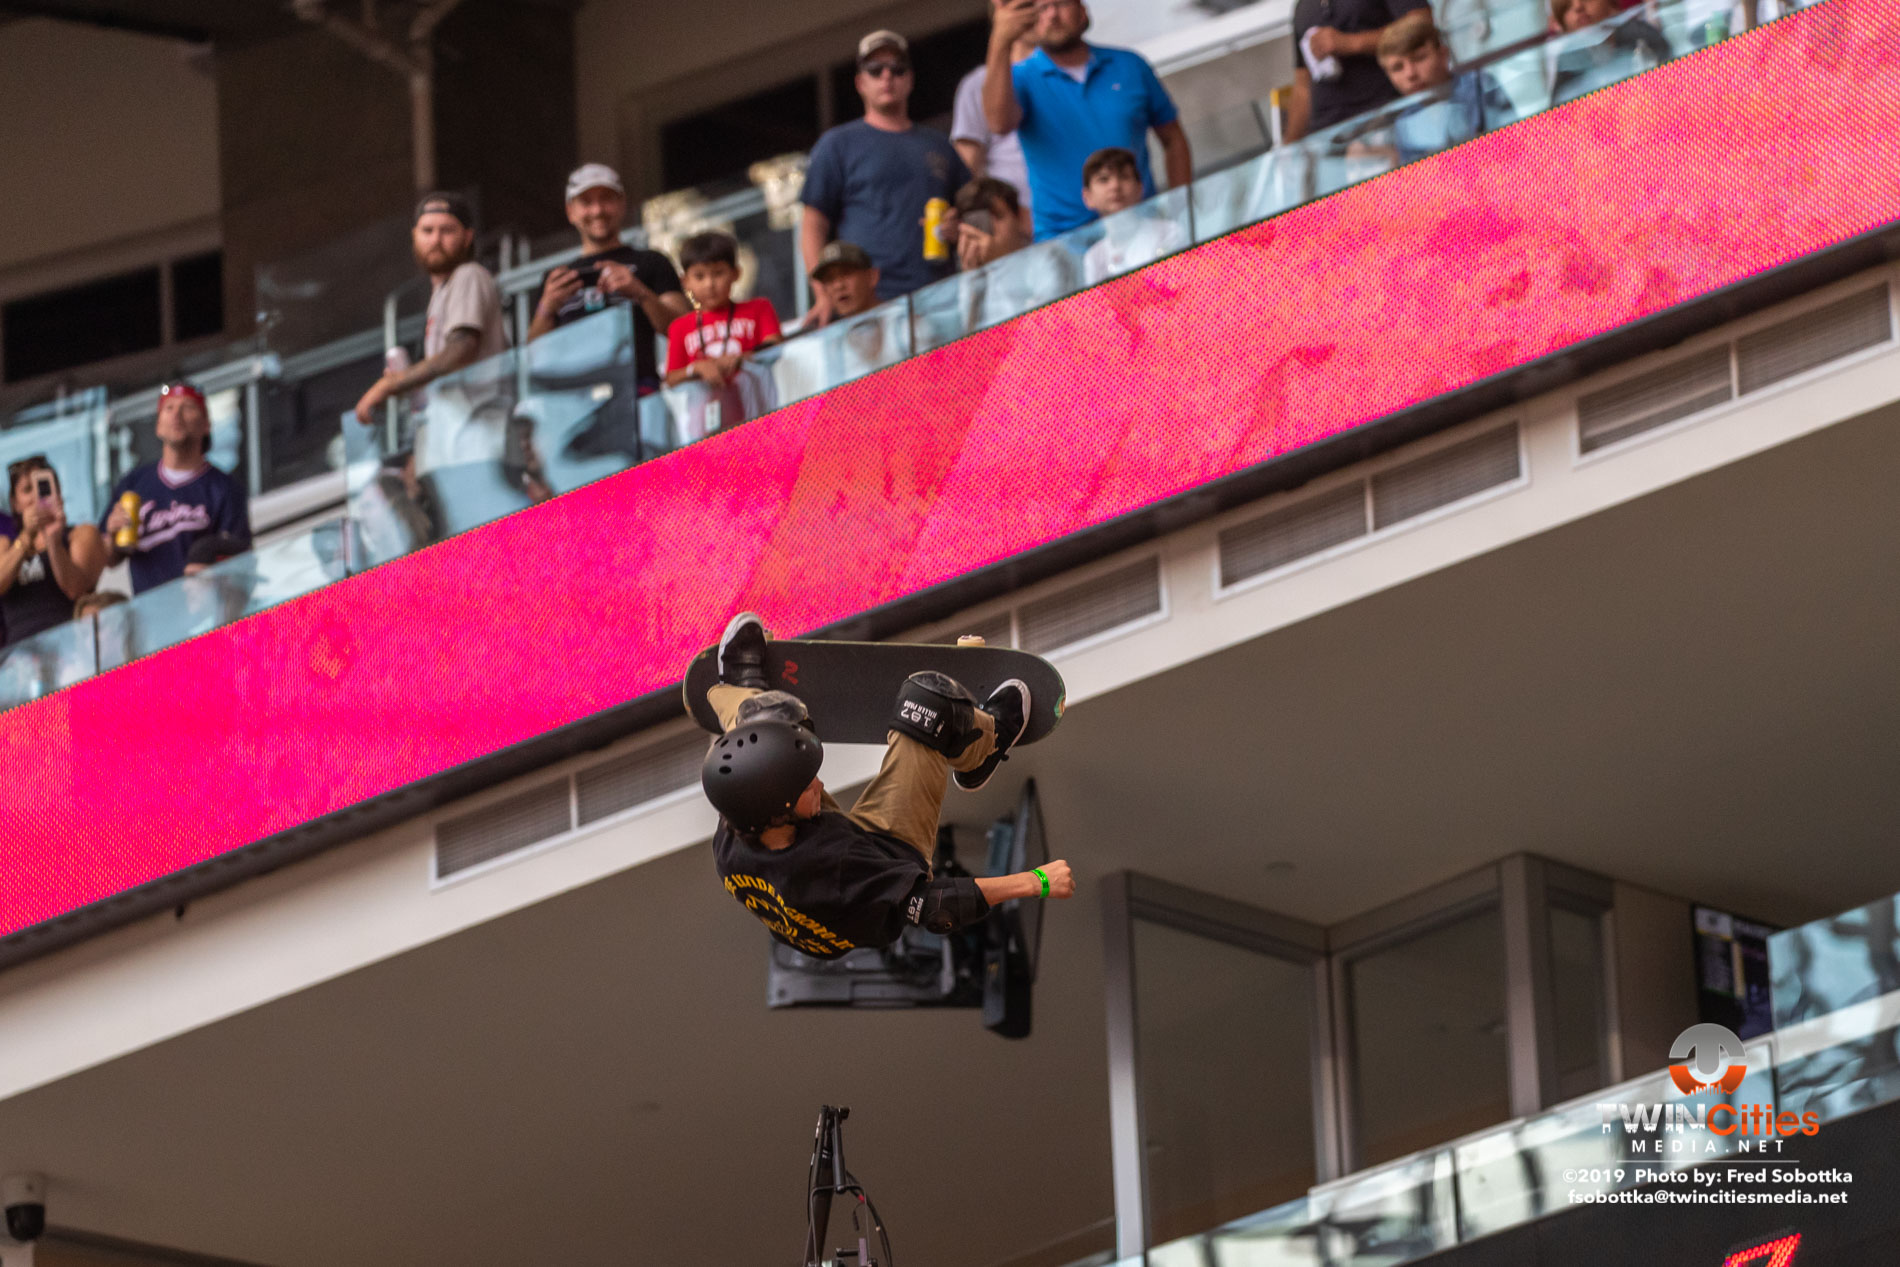 The-Real-Cost-Skateboard-Big-Air-03